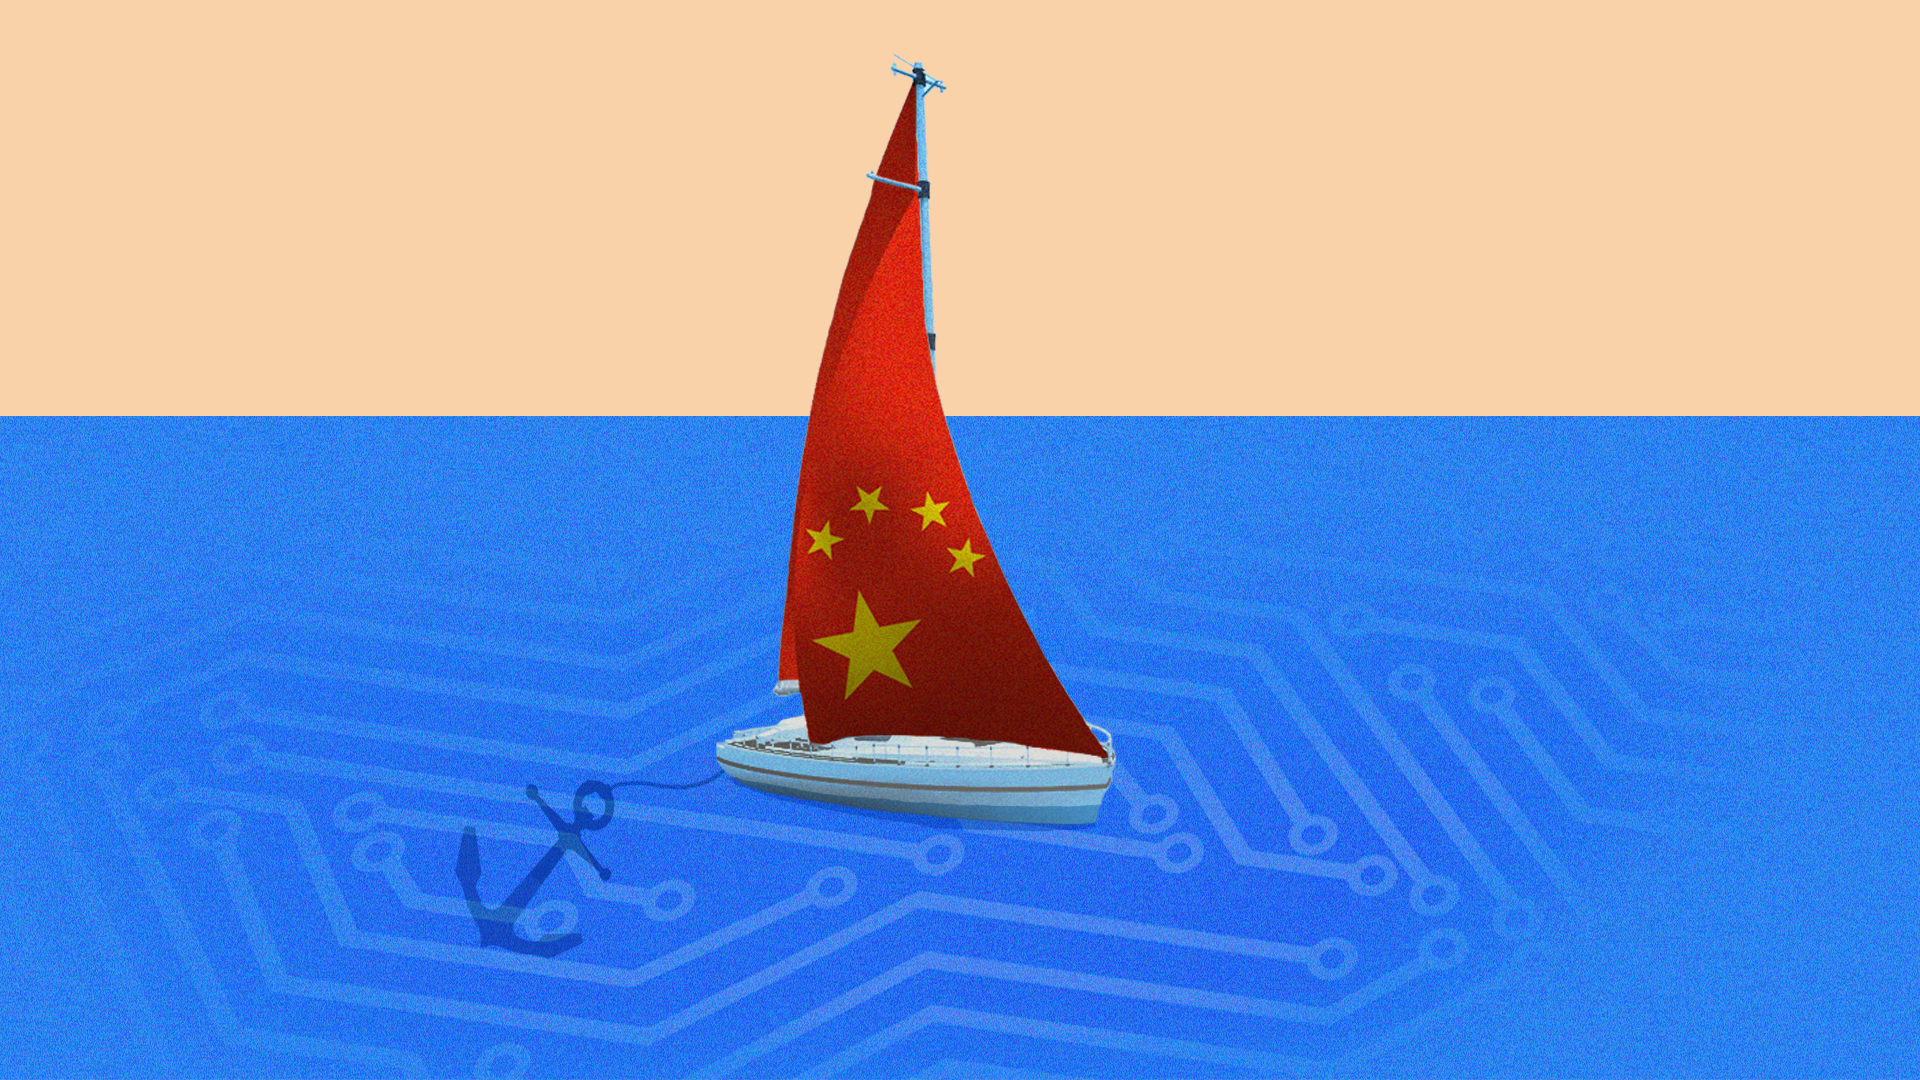 A boat with a Chinese flag as a sail